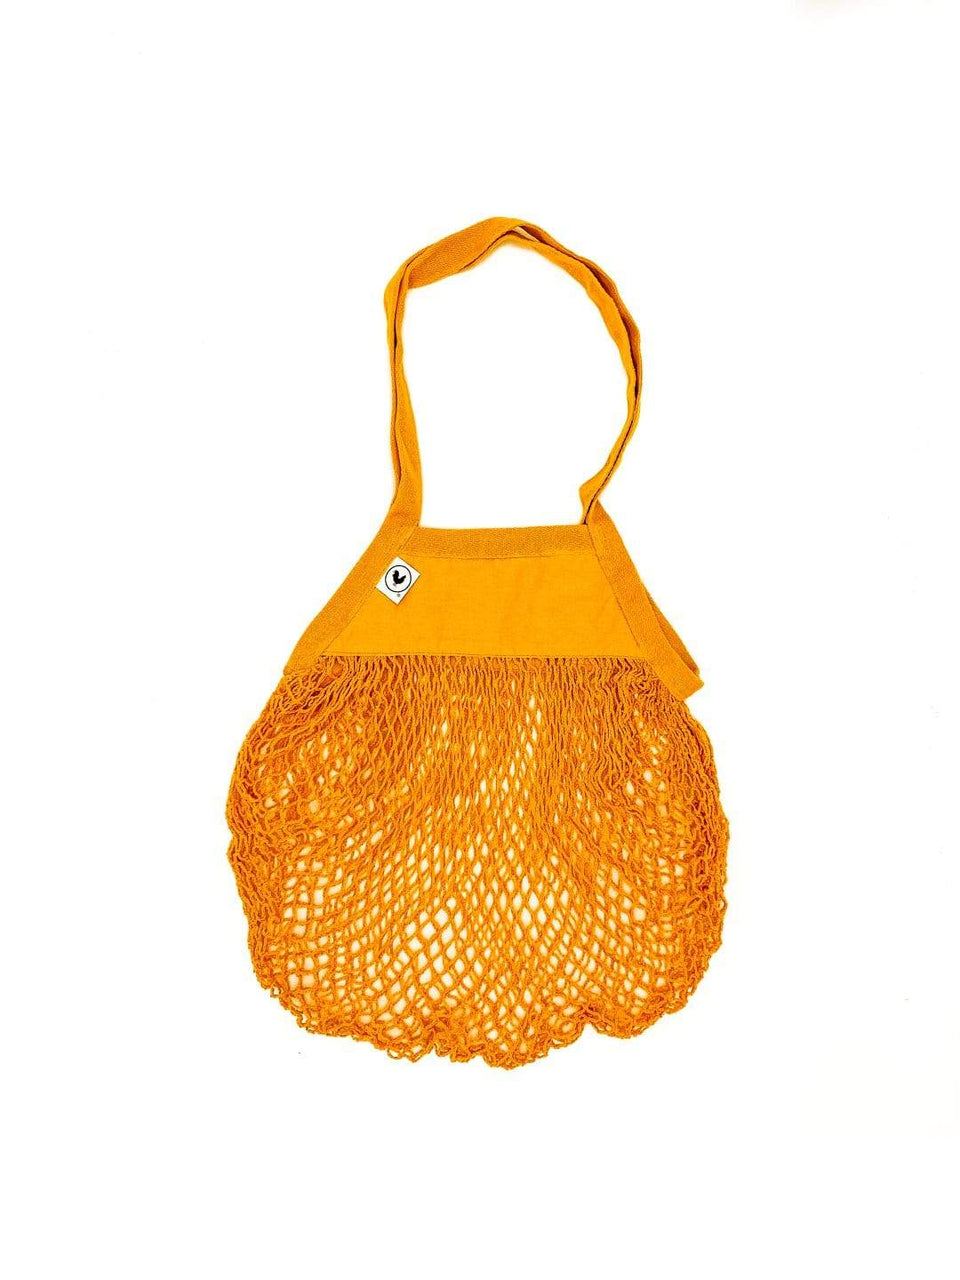 Rewinder Mesh Bag Amber mesh shopping bag Eco Zero Waste